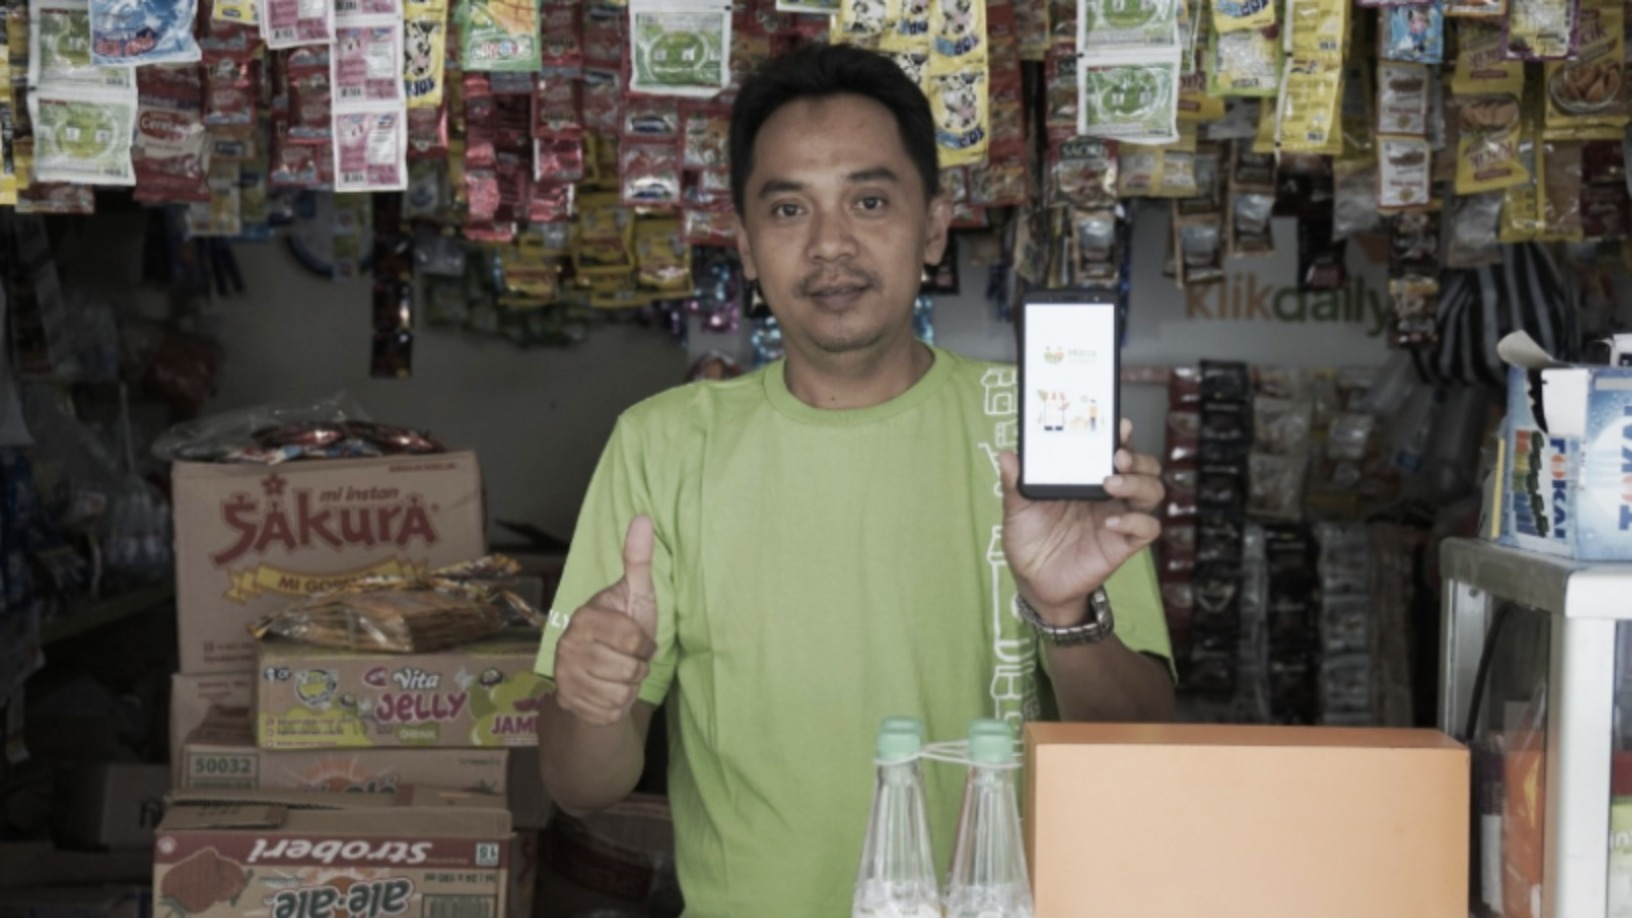 FMCG supply chain solution KlikDaily simplifies life for mom-and-pop stores in Indonesia